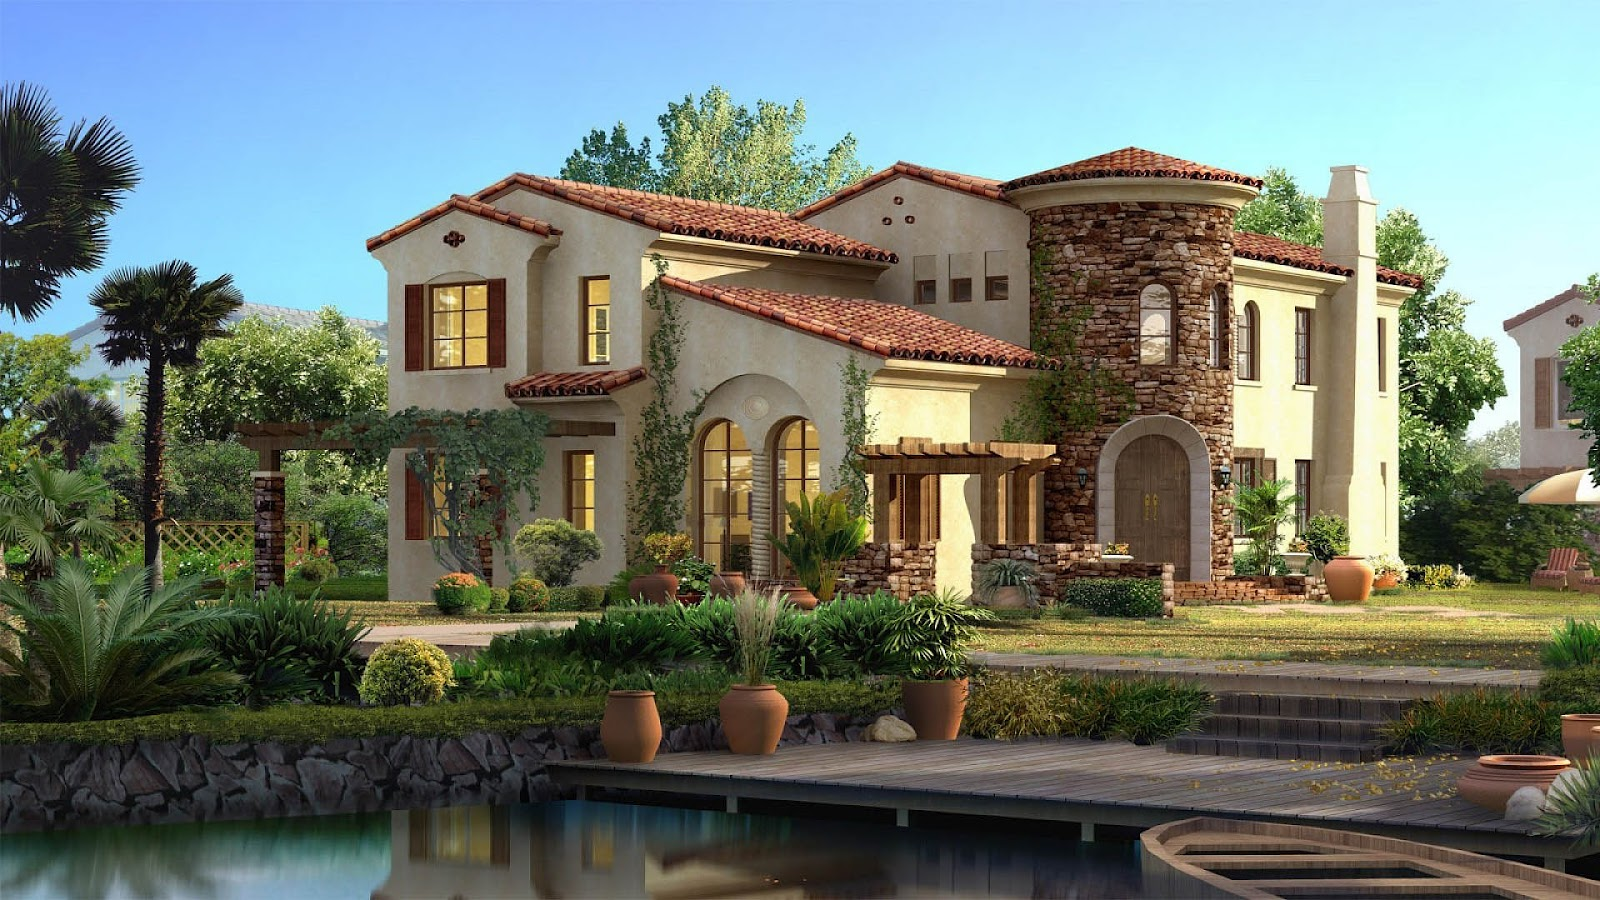 Beautiful Houses HD Wallpapers Beautiful House Images 1600x900